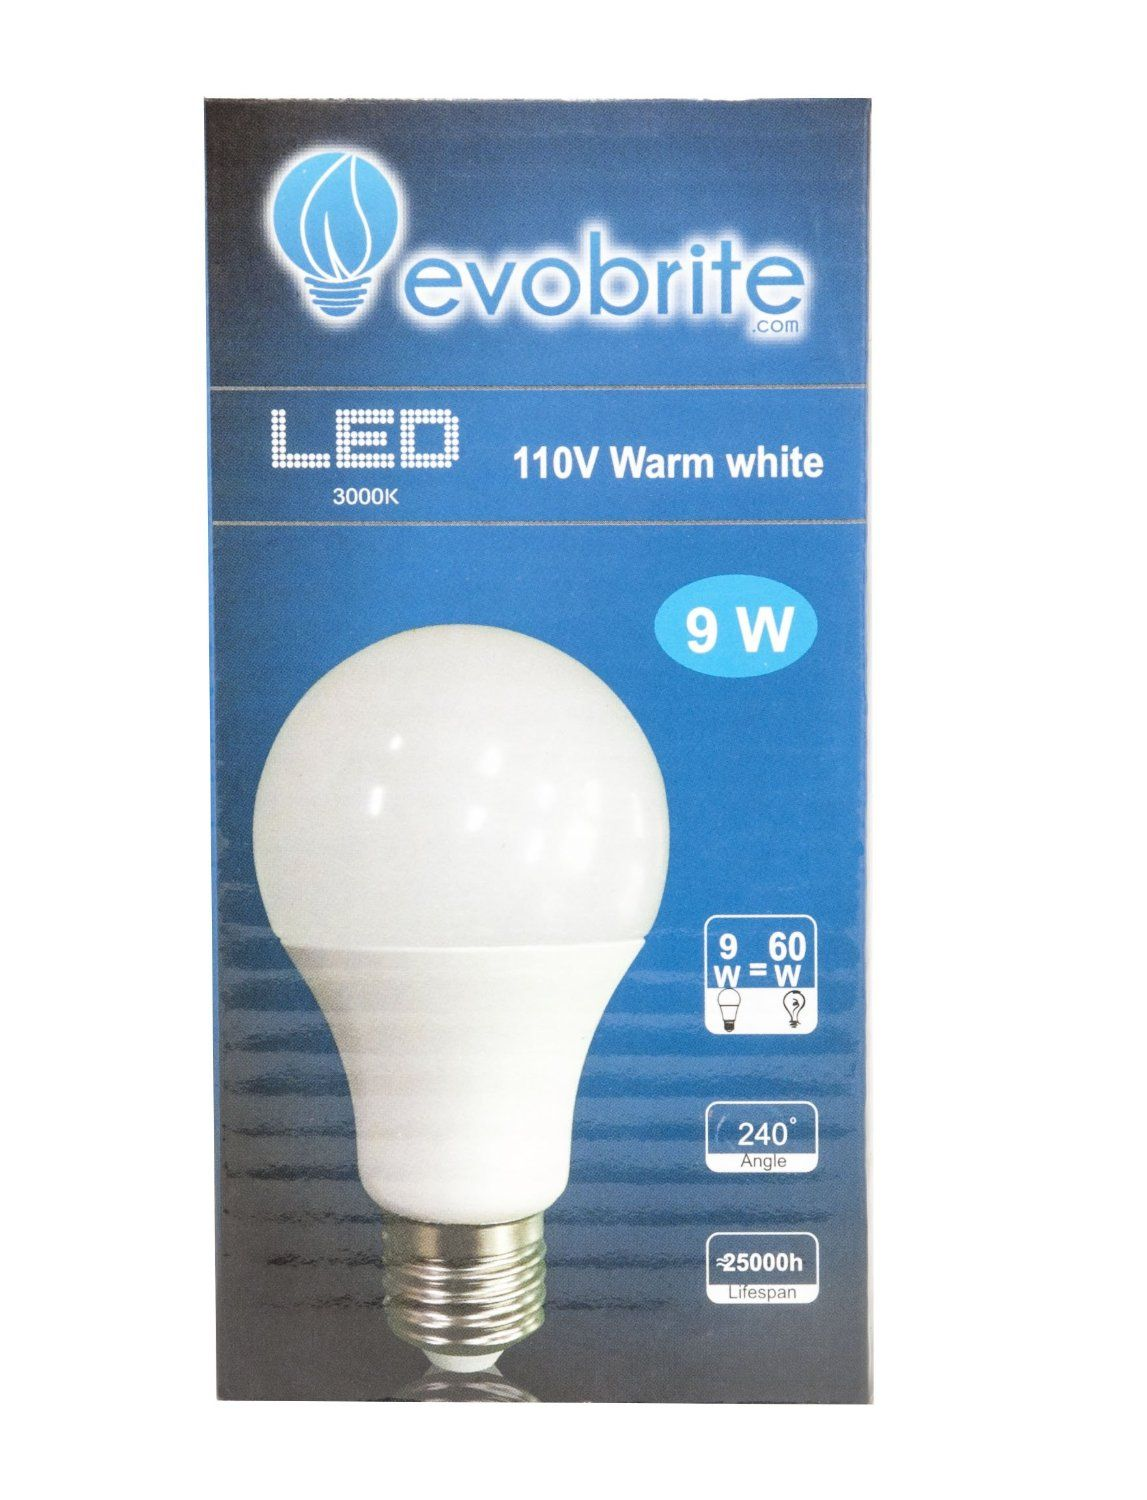 Dimmable Led Light Bulb By Evobrite Review Giveaway